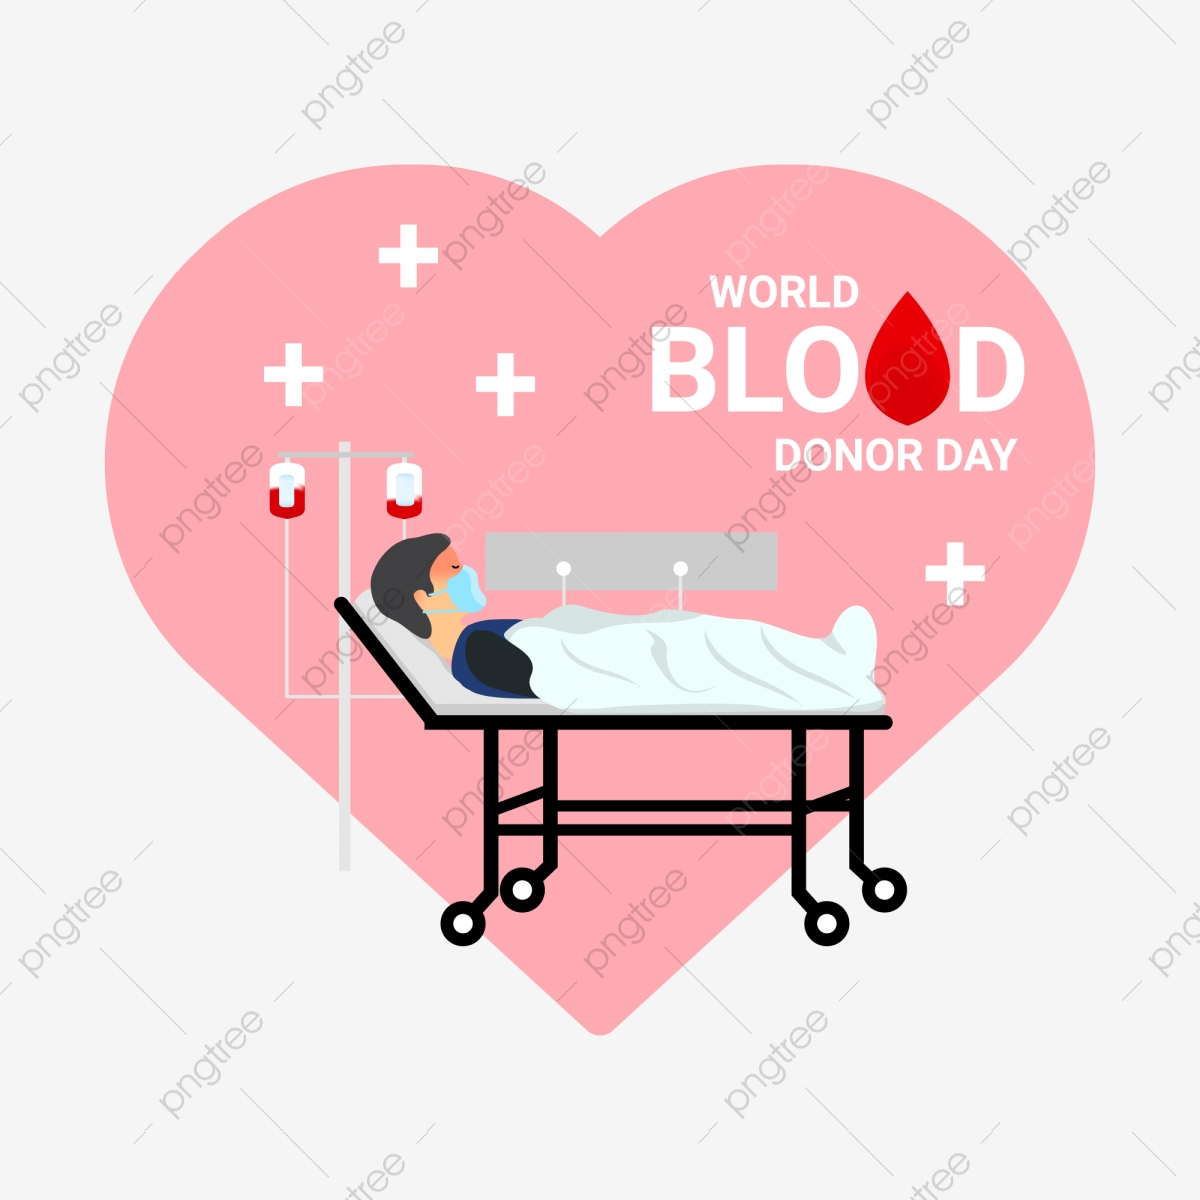 World Blood Donor Day To Help Humans Stay Alive Blood Blood Day Blood Donor Day Png And Vector With Transparent Background For Free Download